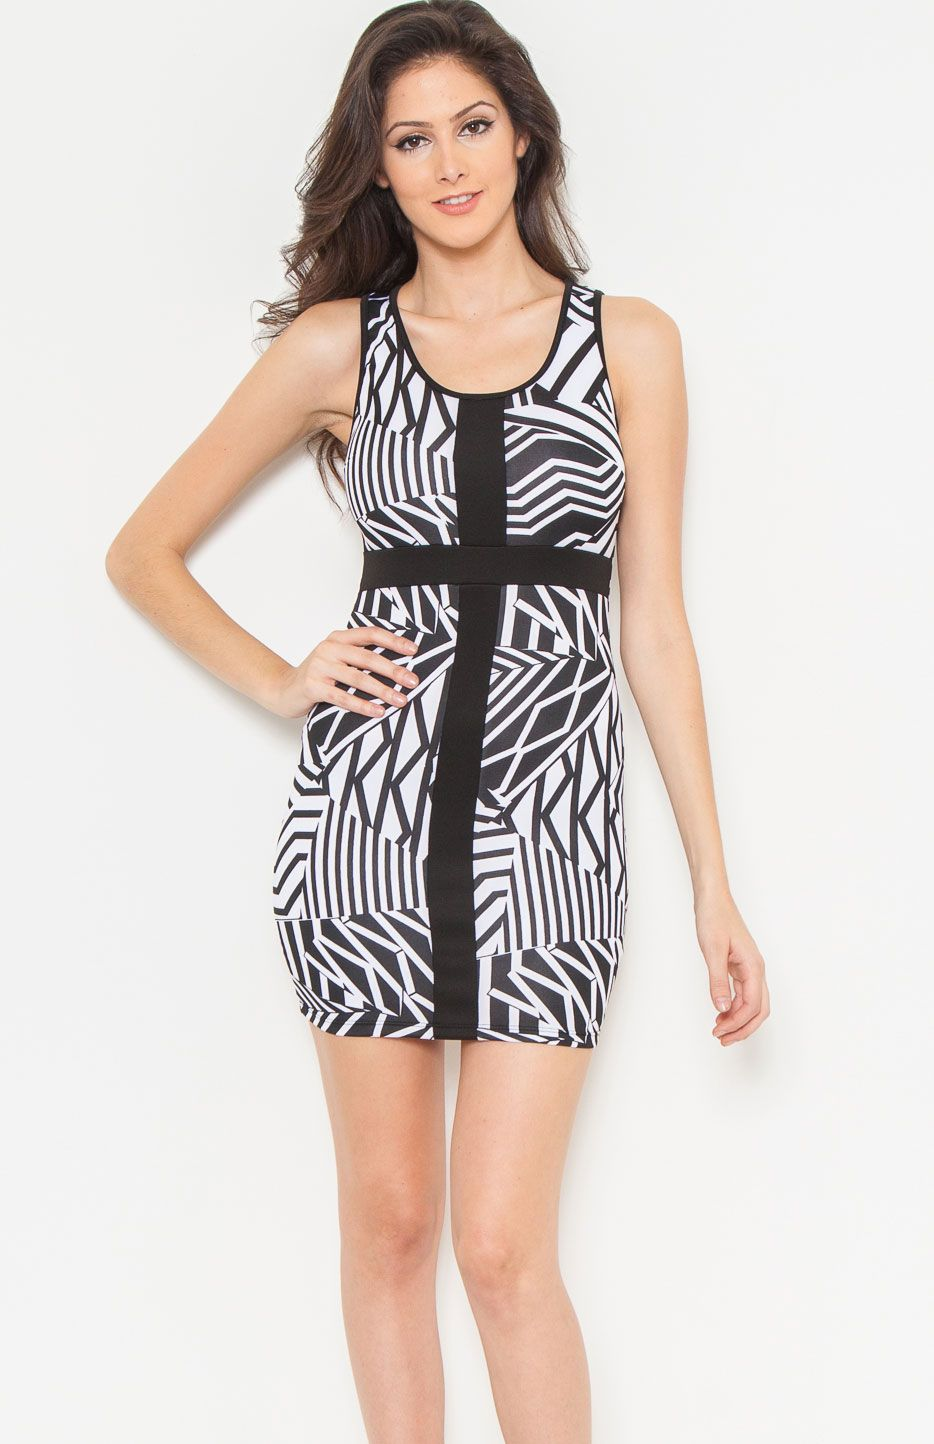 Round neck sleeveless multi way striped bodycon dress featuring racerback and solid cross front. Simple black and white party dress to go clubbing.Price Per Piece $11.95